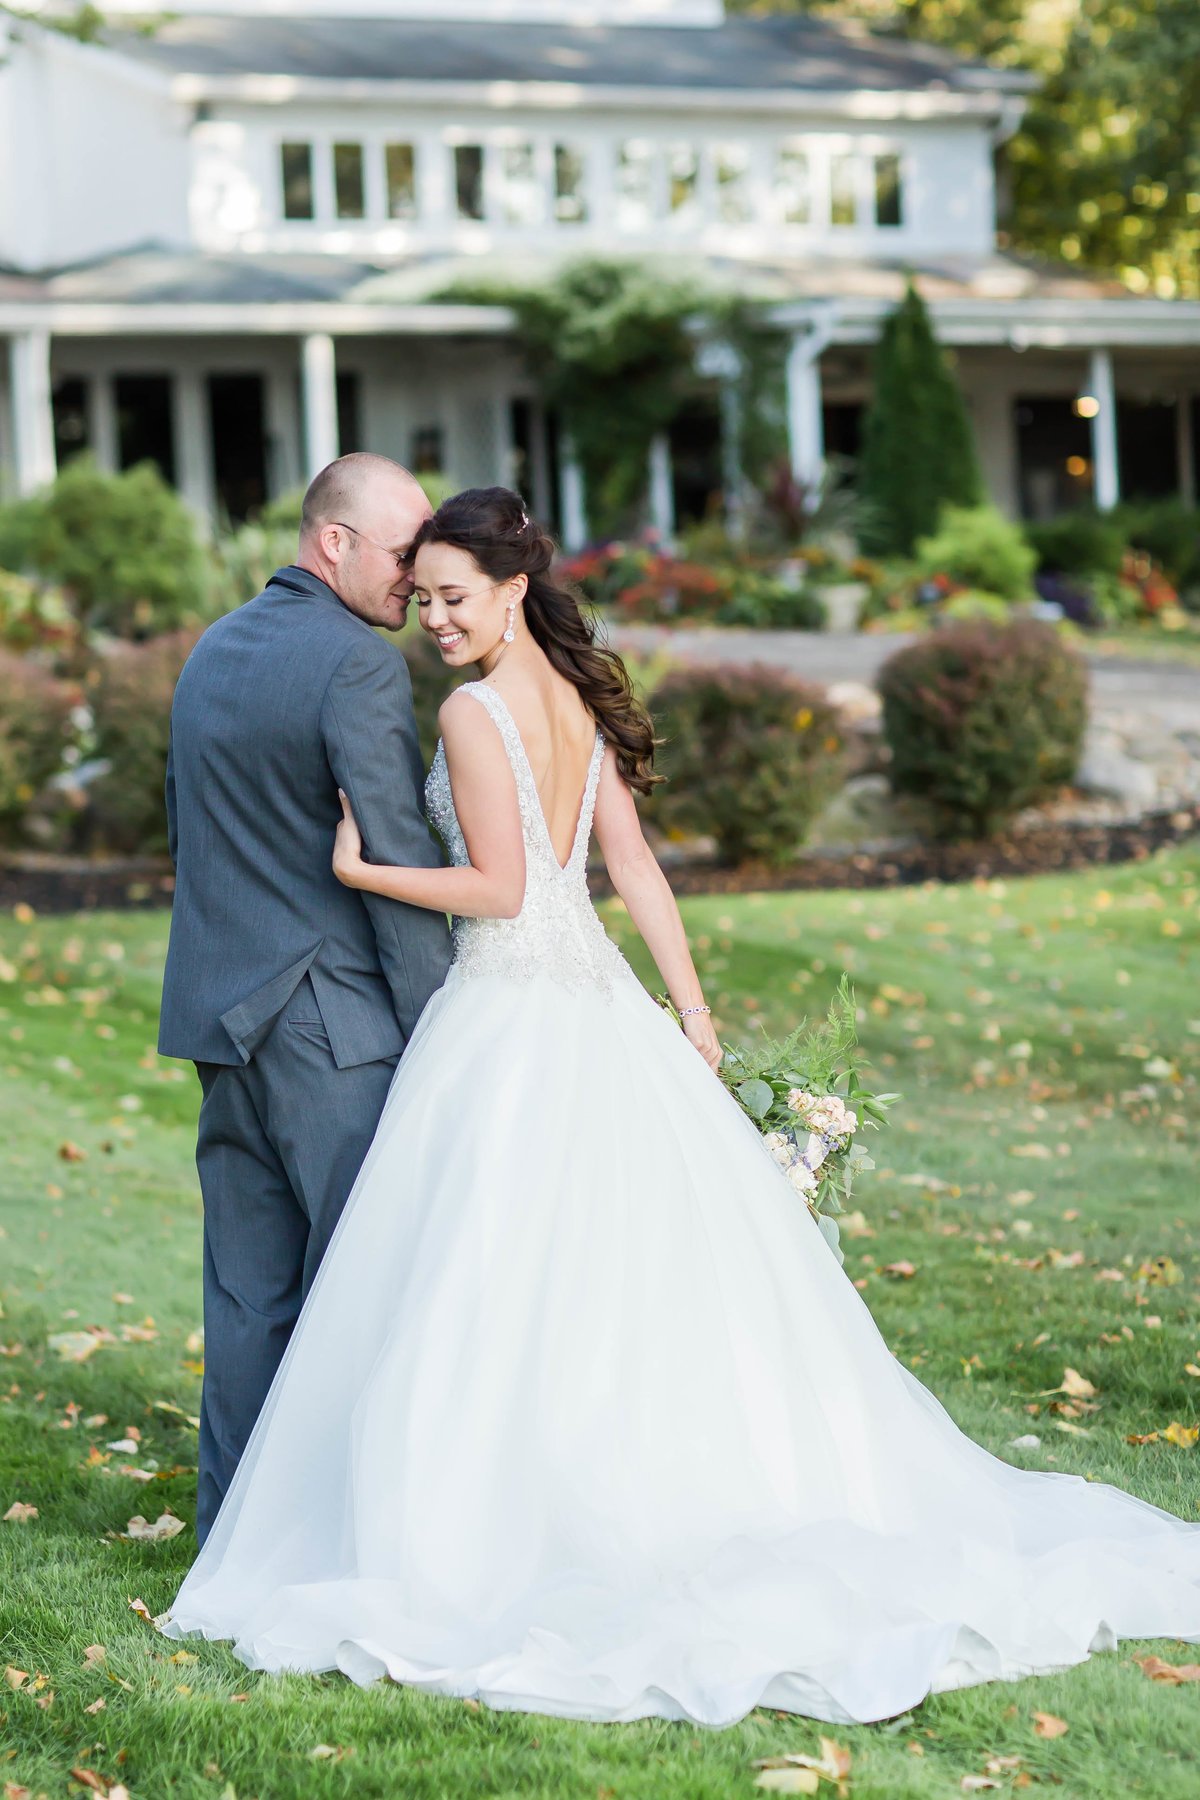 oaks-lakeside-ohio-wedding-loren-jackson-photography-66